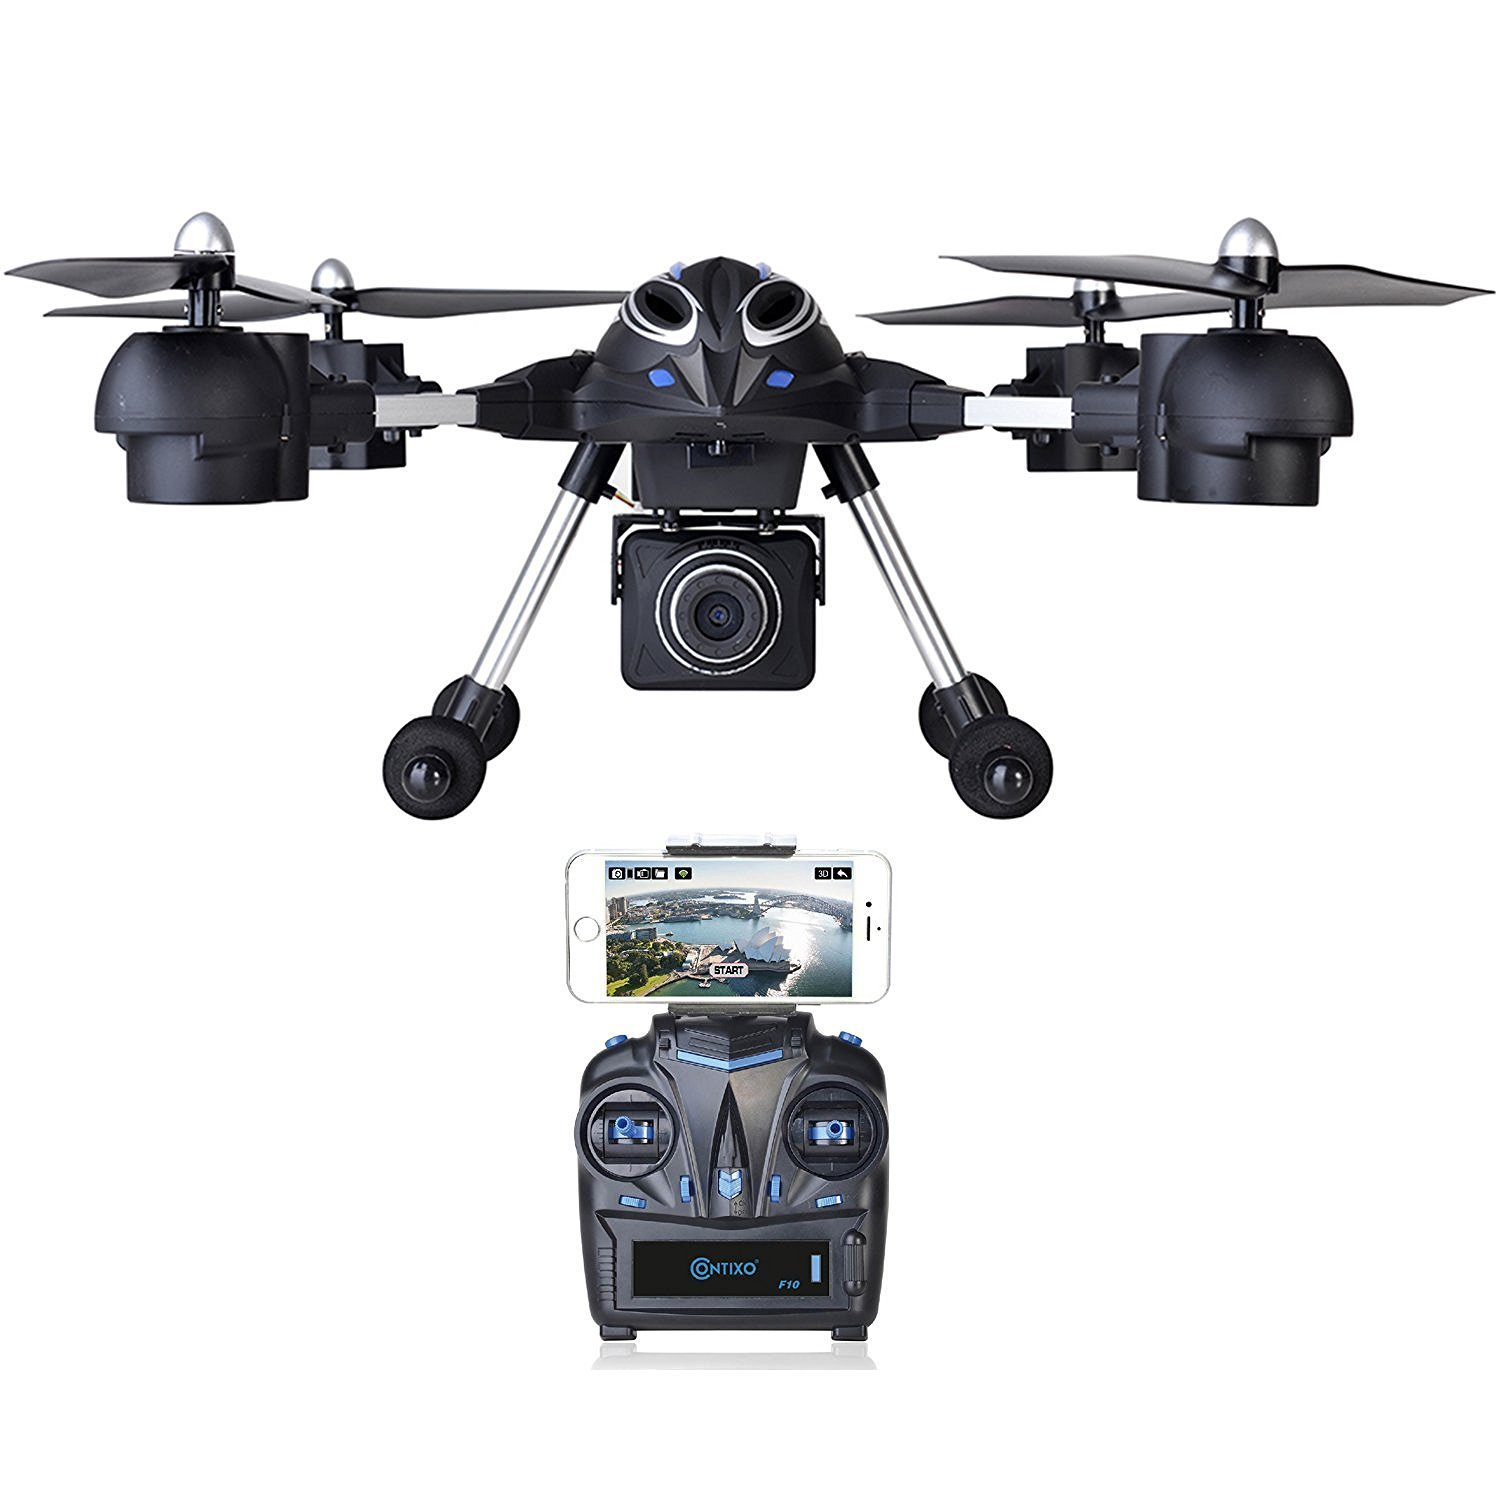 Contixo F10 Quadcopter RC Drone, 4 Channel, 2.4GHz, 6 Axis Gyro RTF, Support GoPro HERO... by Contixo